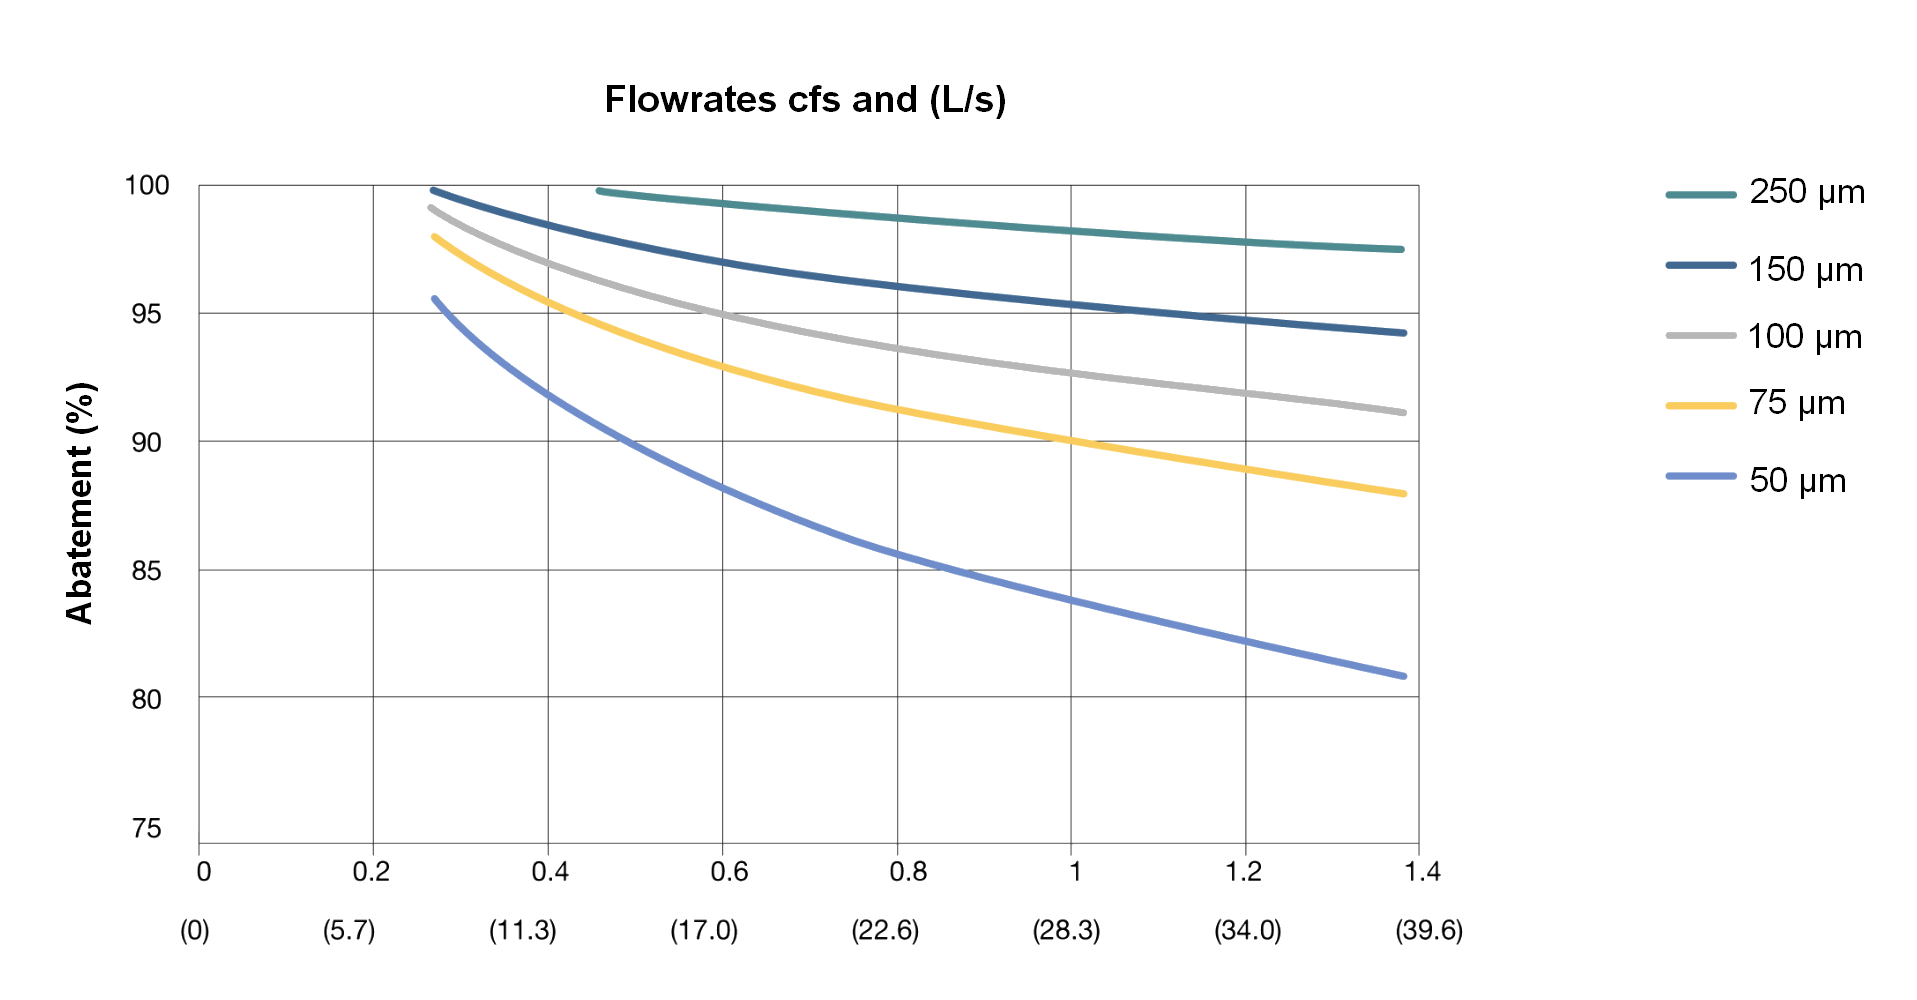 Flowrates Downstream EN